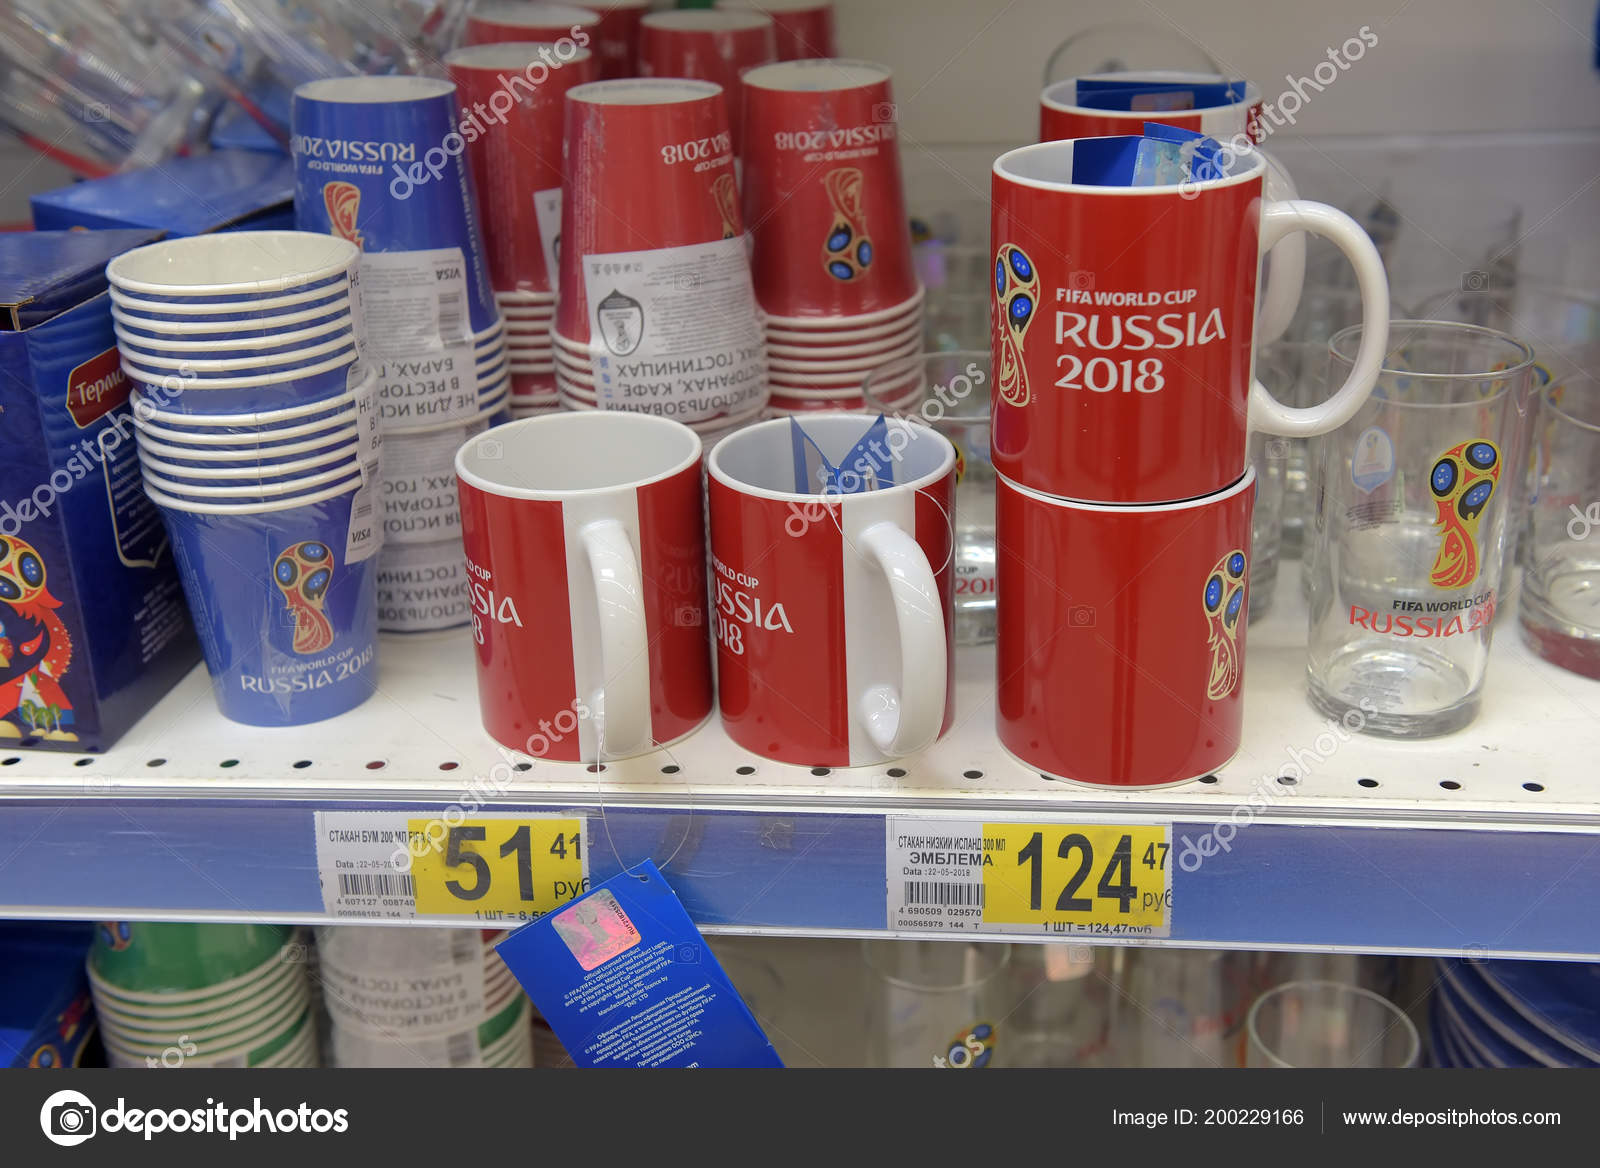 Petersburg Russia 2018 Gifts Form Glass Picture Official